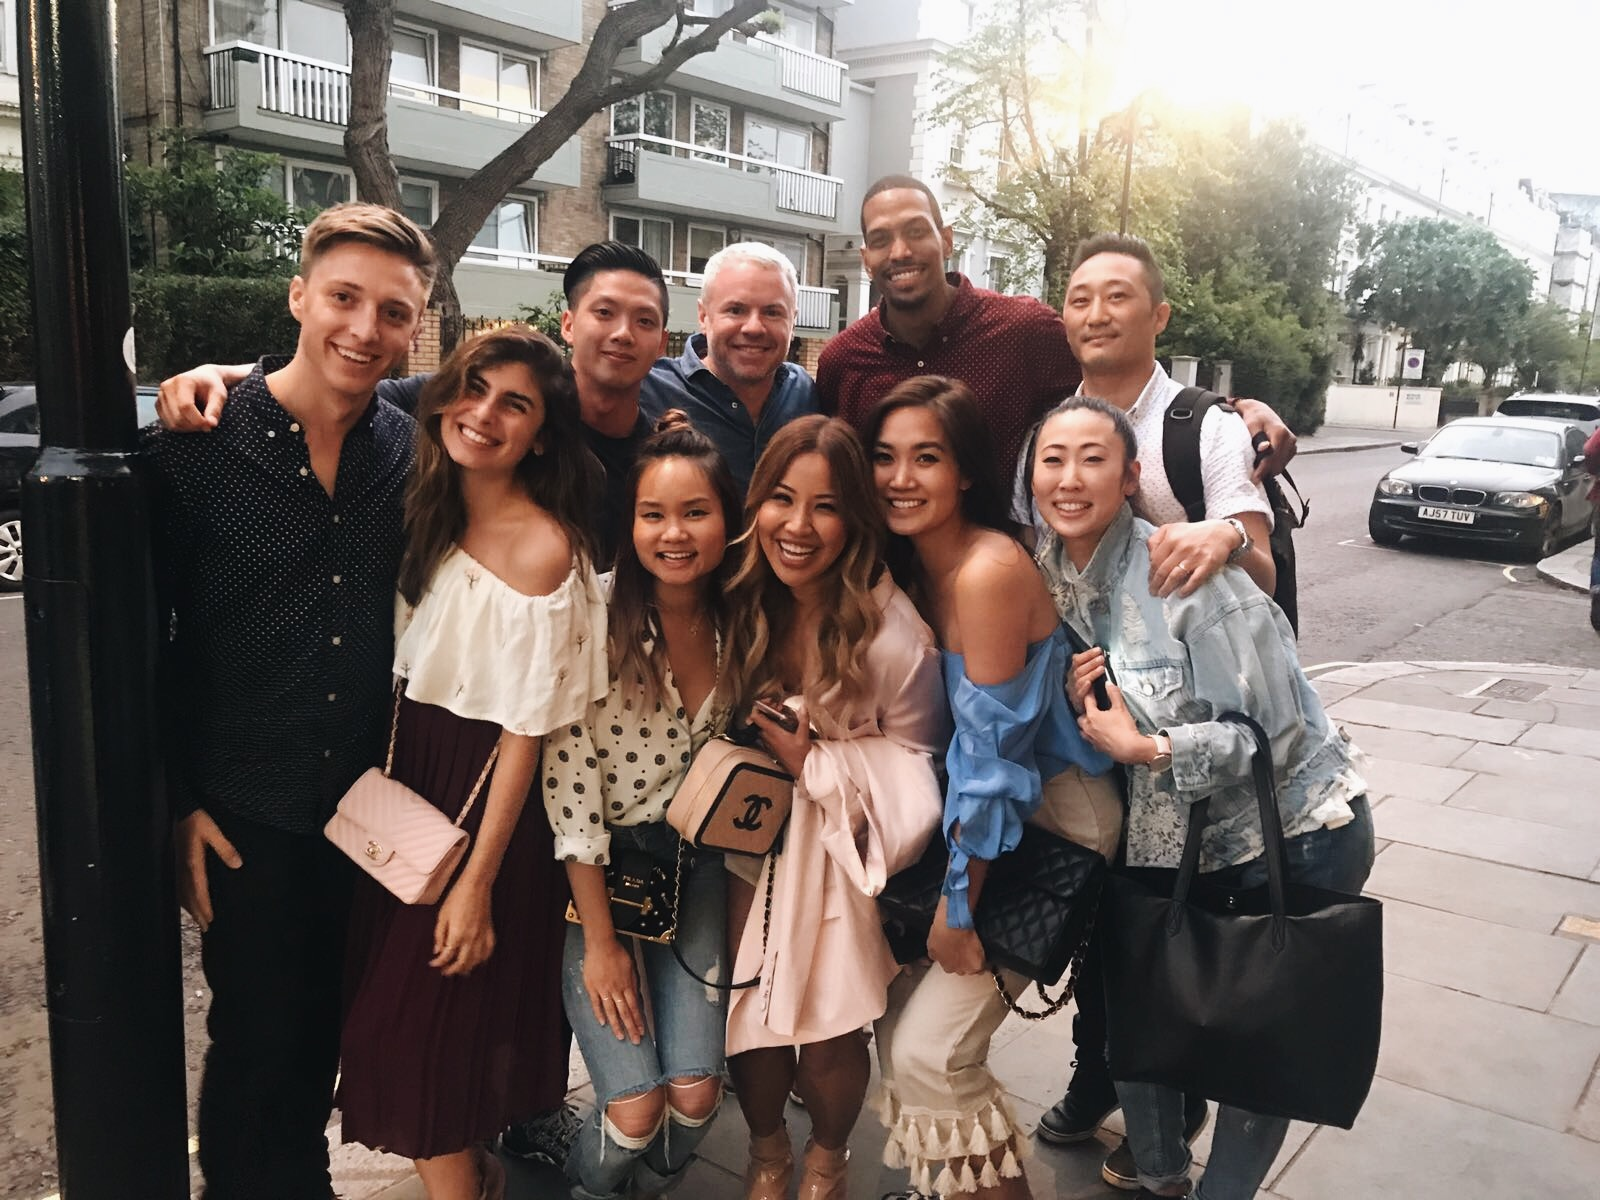 Here is the full group of us with all of our Insta-hubbies! Rare! As they're always behind the camera being super paparazzi haha!These are the guys that make the magic happen! Love all of these people! They made London so much fun!  (@mitchmacsween, @ave.camilla, @ptran.sss, @thelustlistt, @mister_gunner, @miss_gunner, @donowonge, ME, @lawrenceahn, @thatsotee)